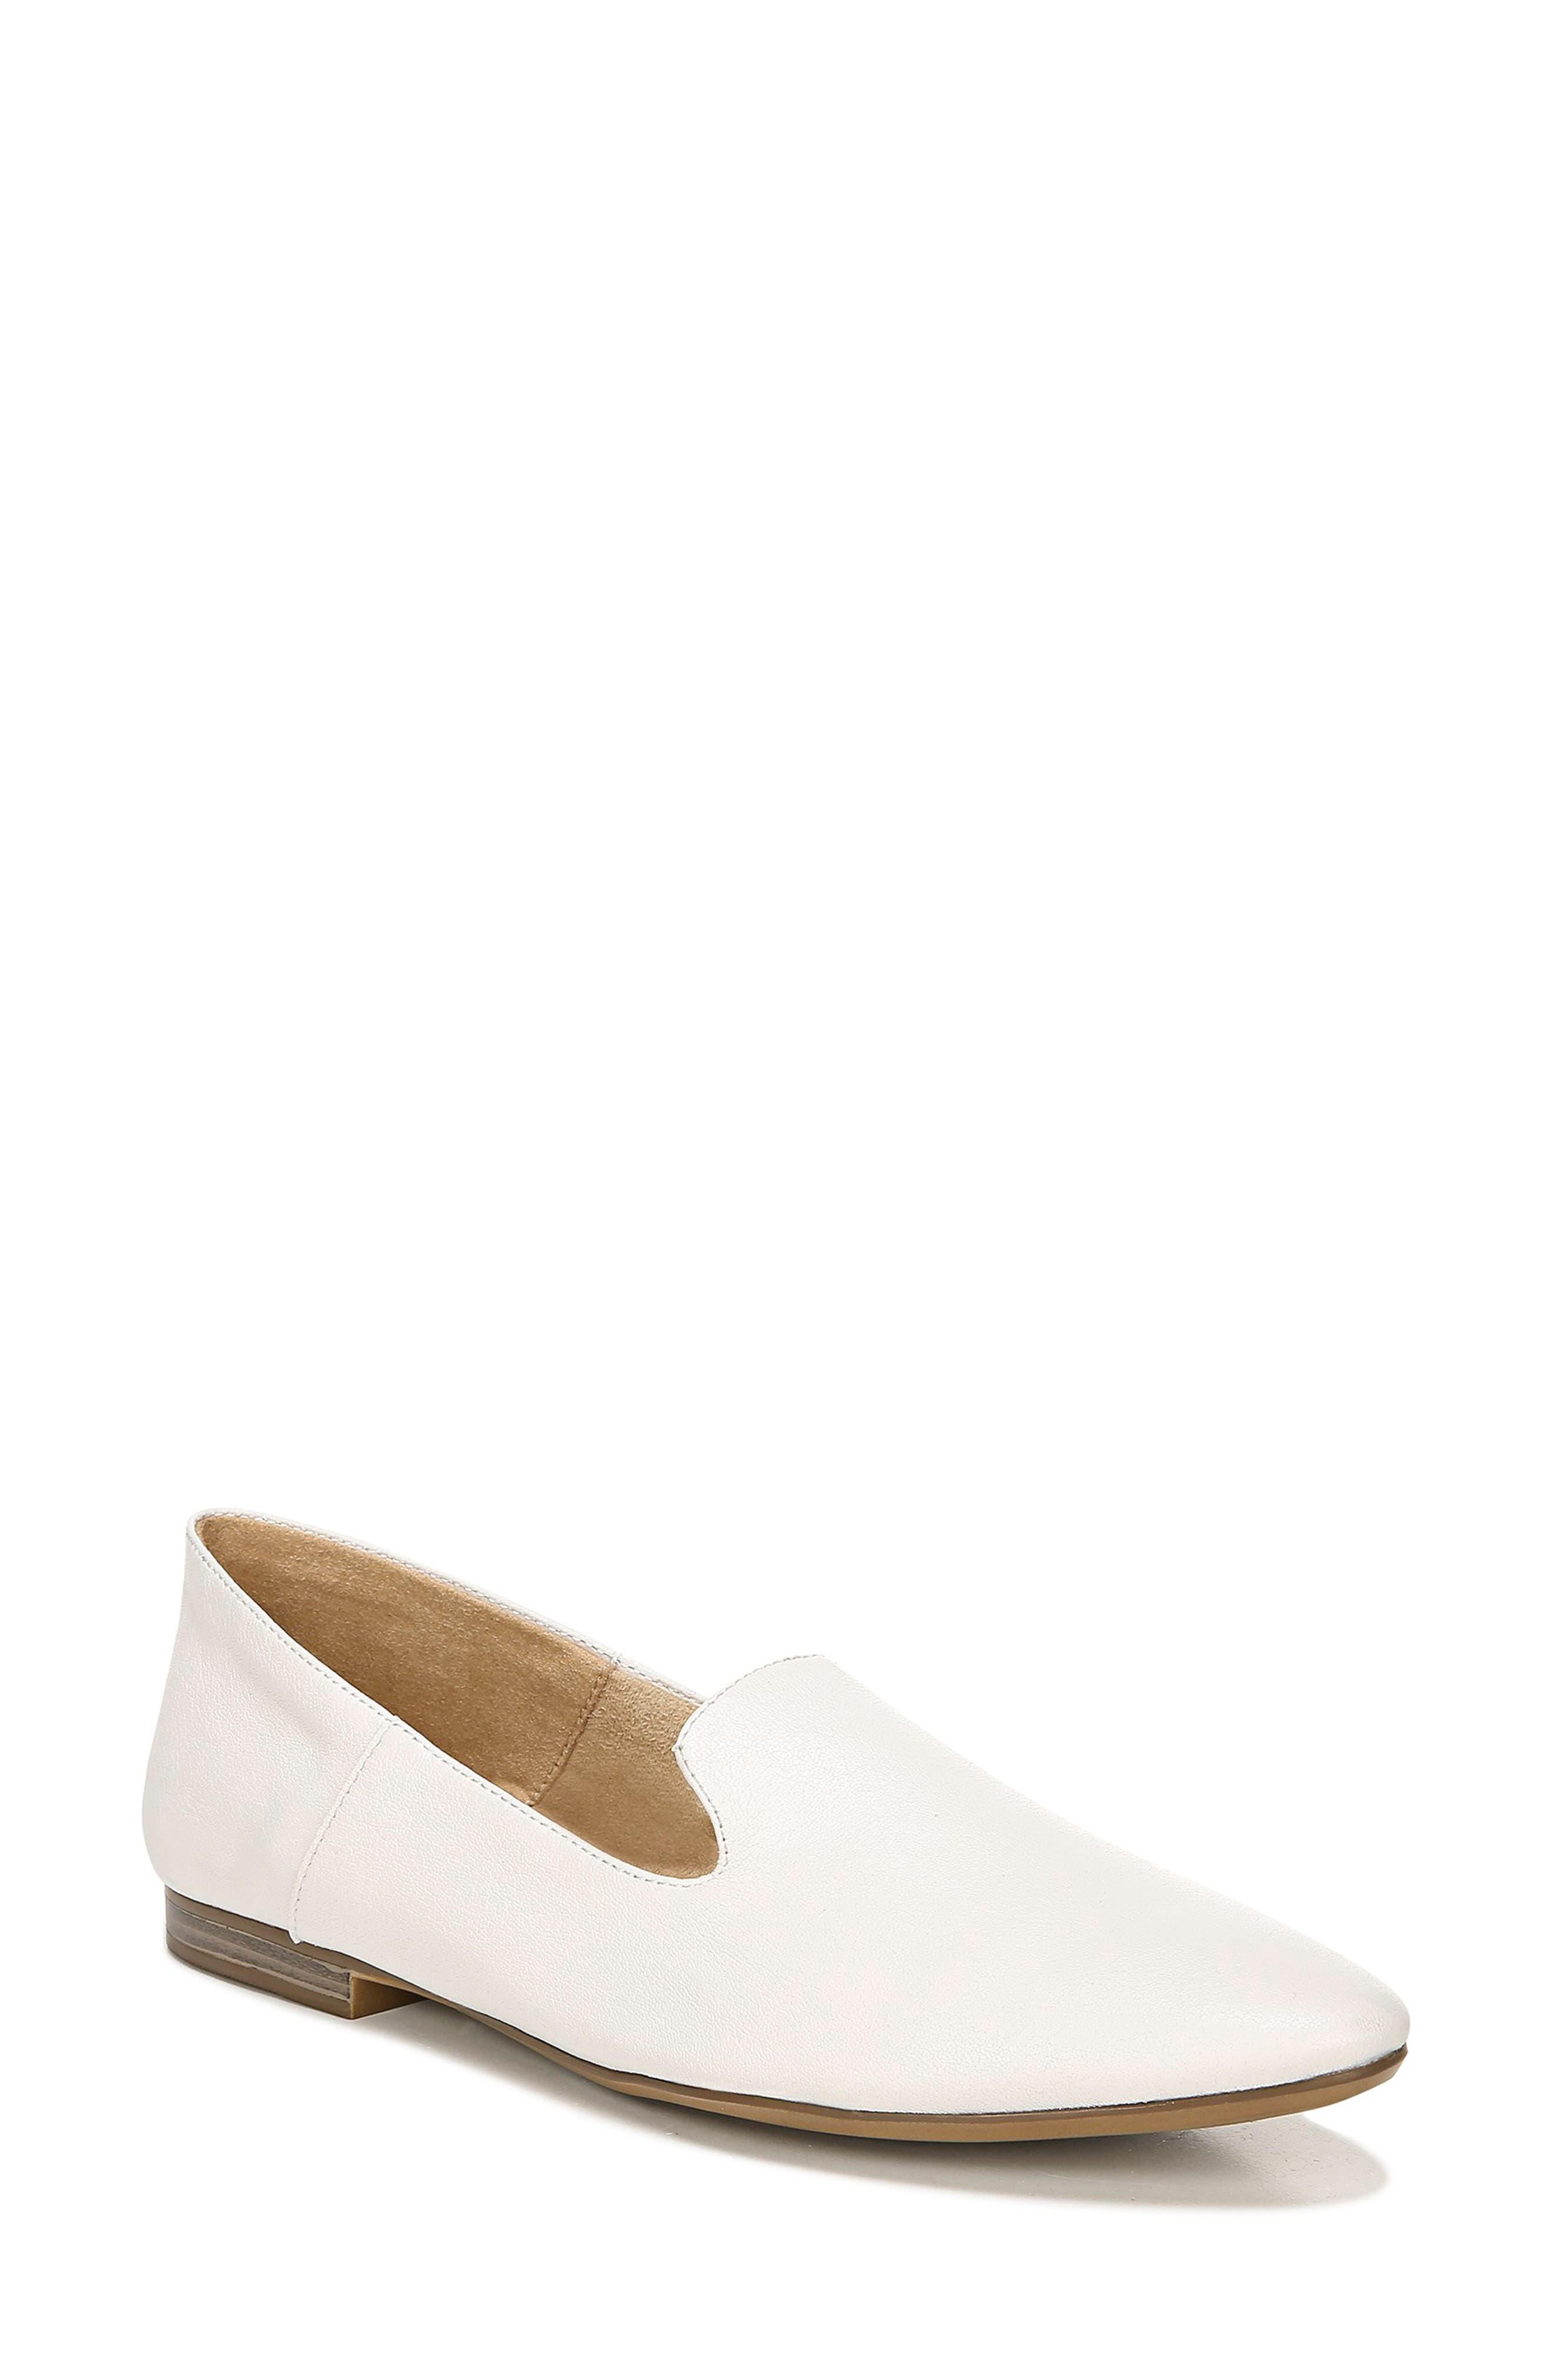 Naturalizer Lorna Collapsible Heel Loafer (Women)